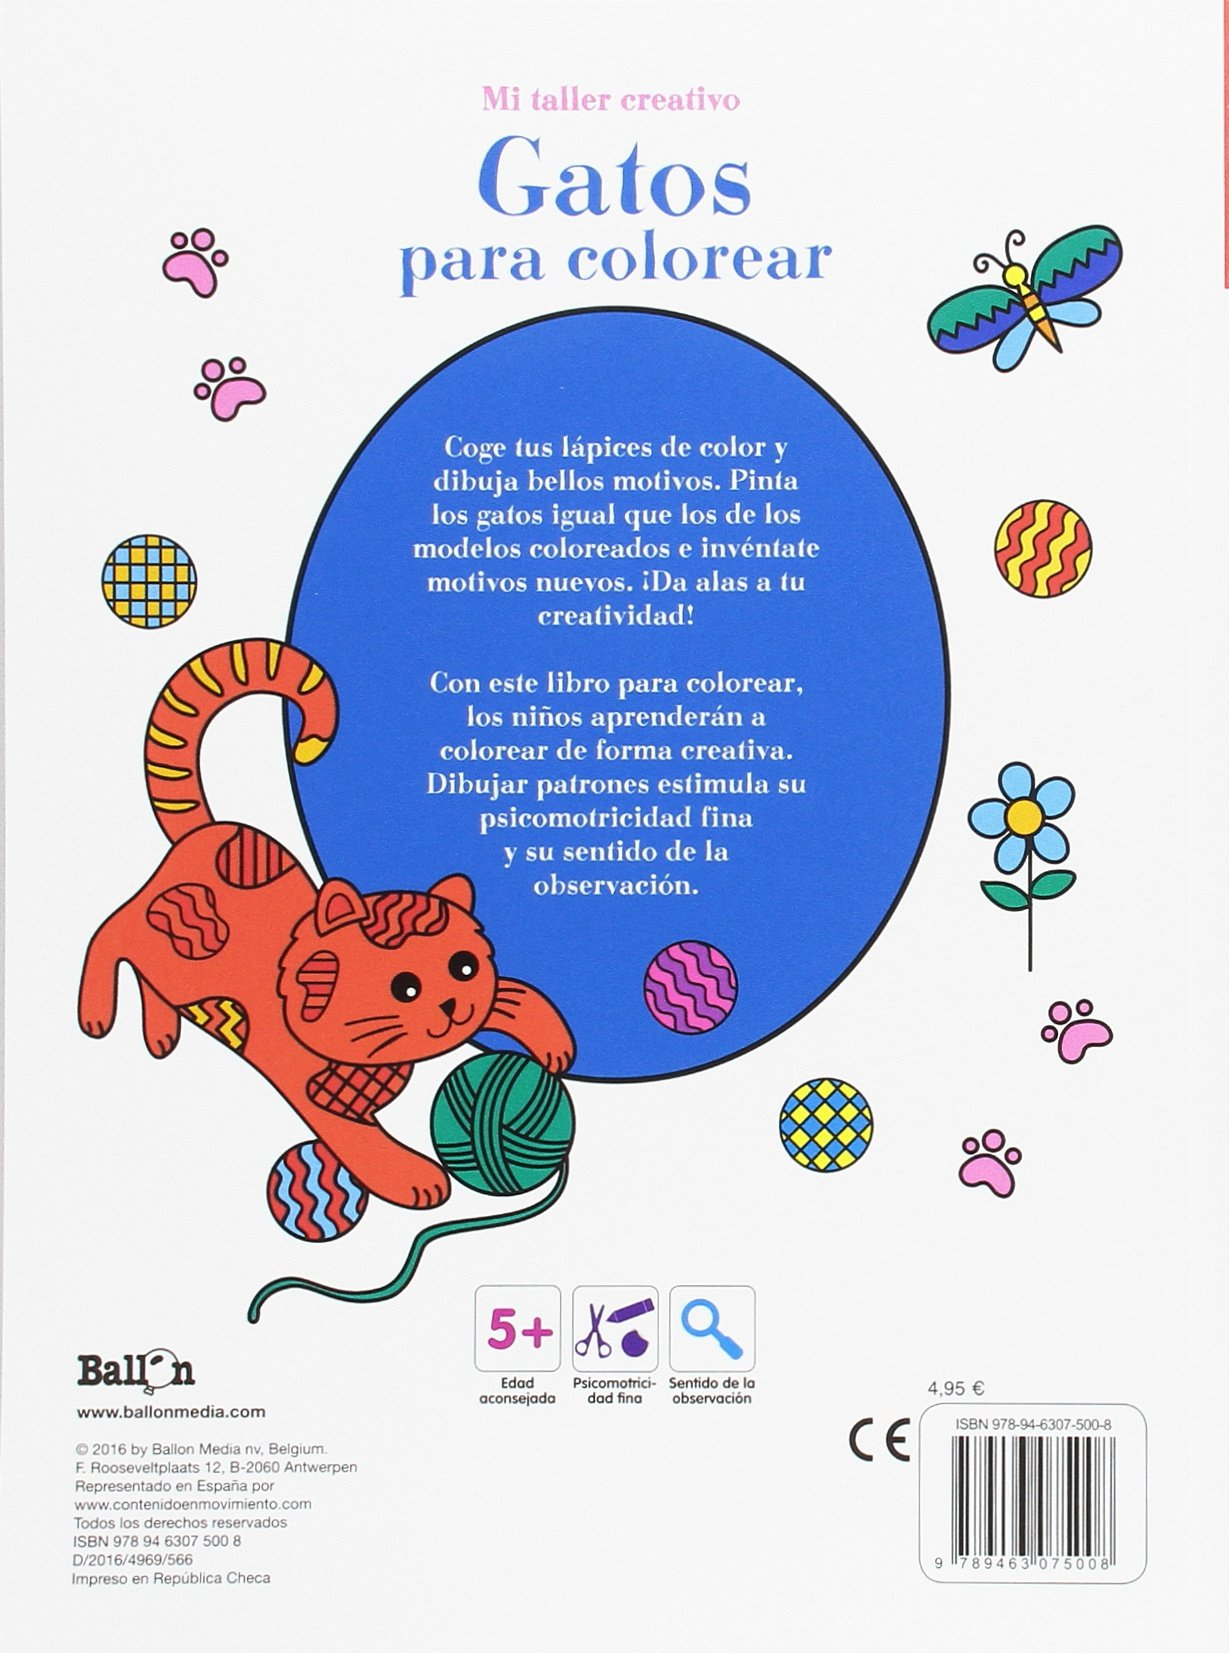 Gatos para colorear - Mi taller creativo: Ballon: 9789463075008: Amazon.com: Books